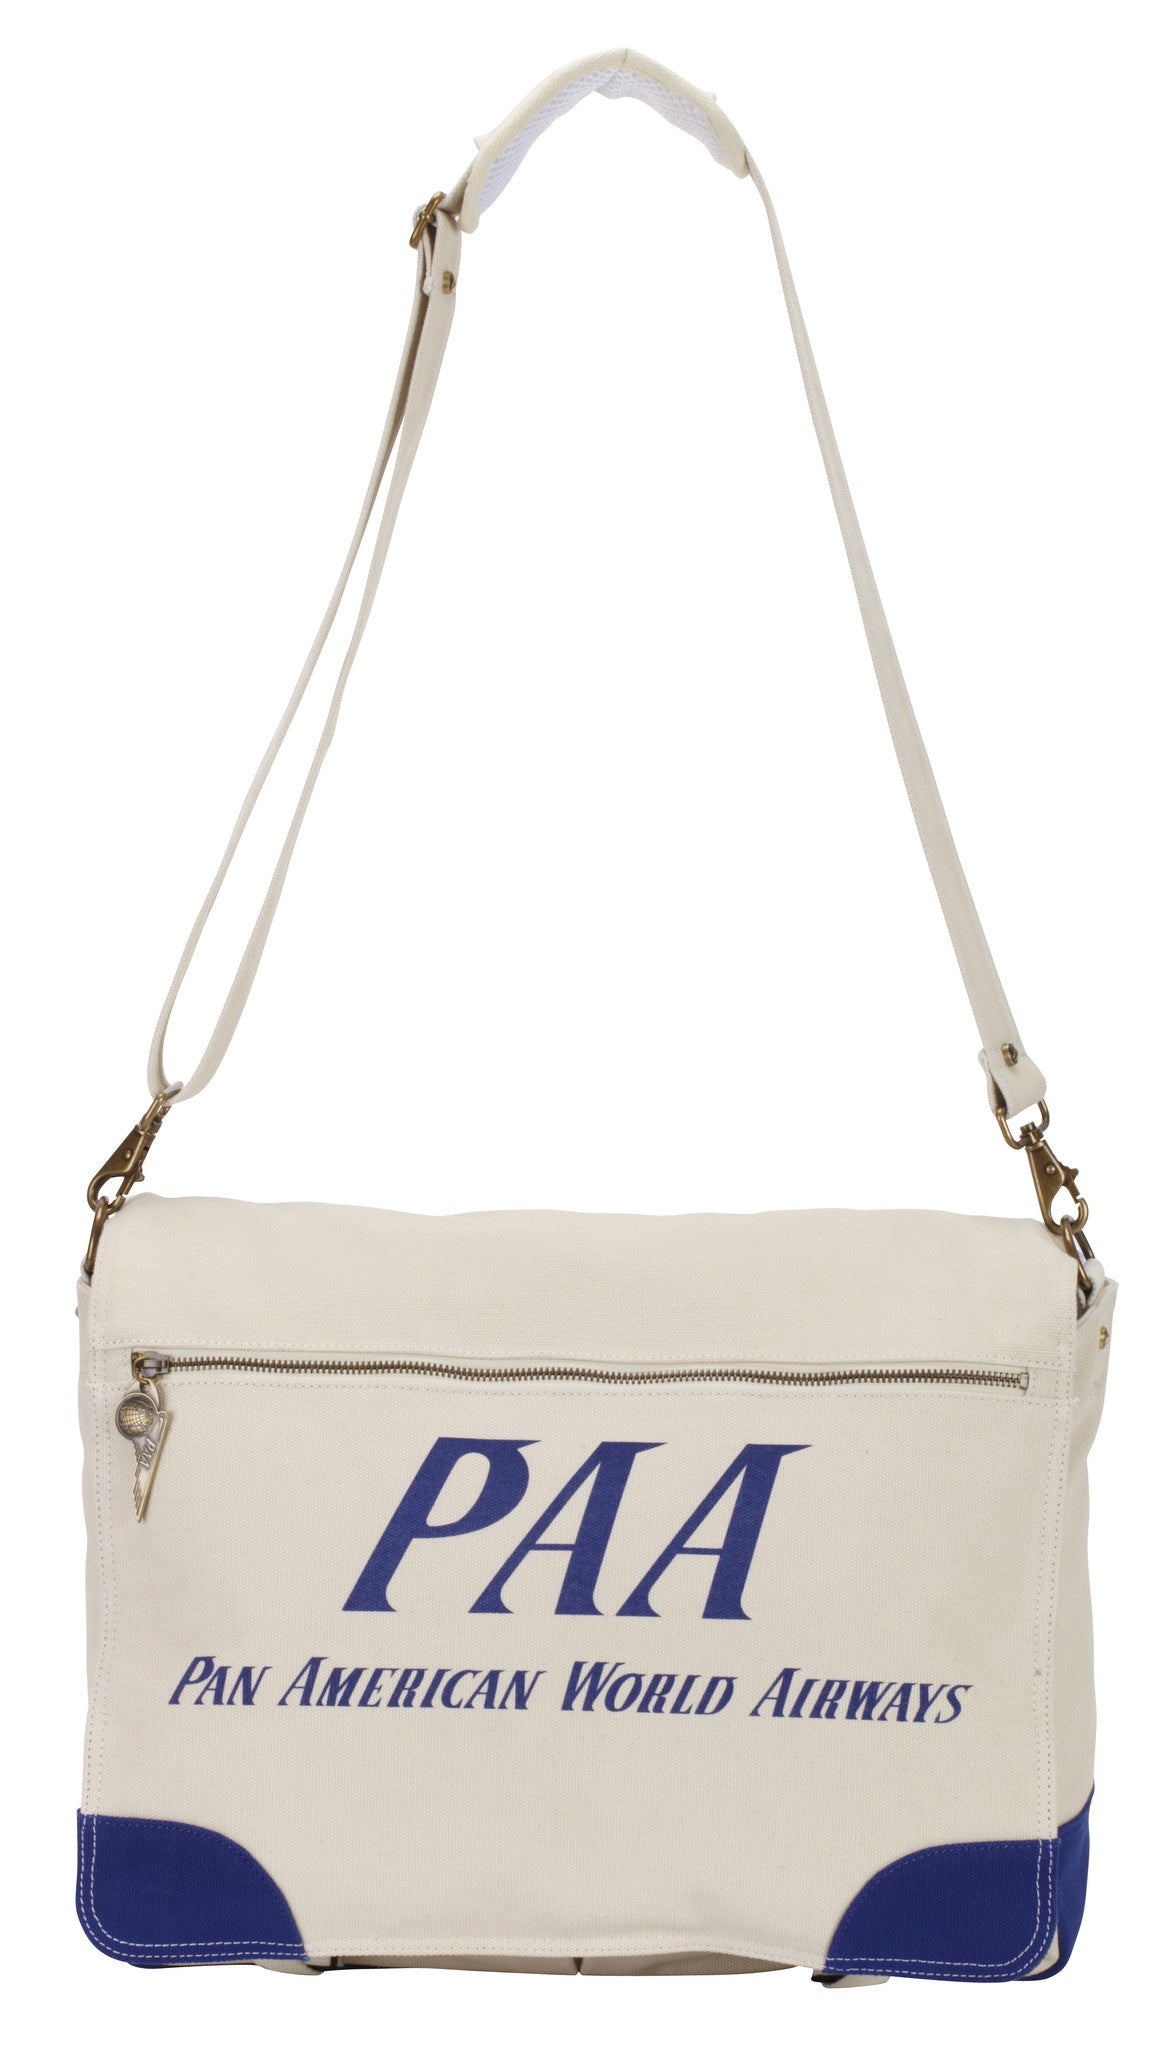 Pan Am Vintage Messenger Bag